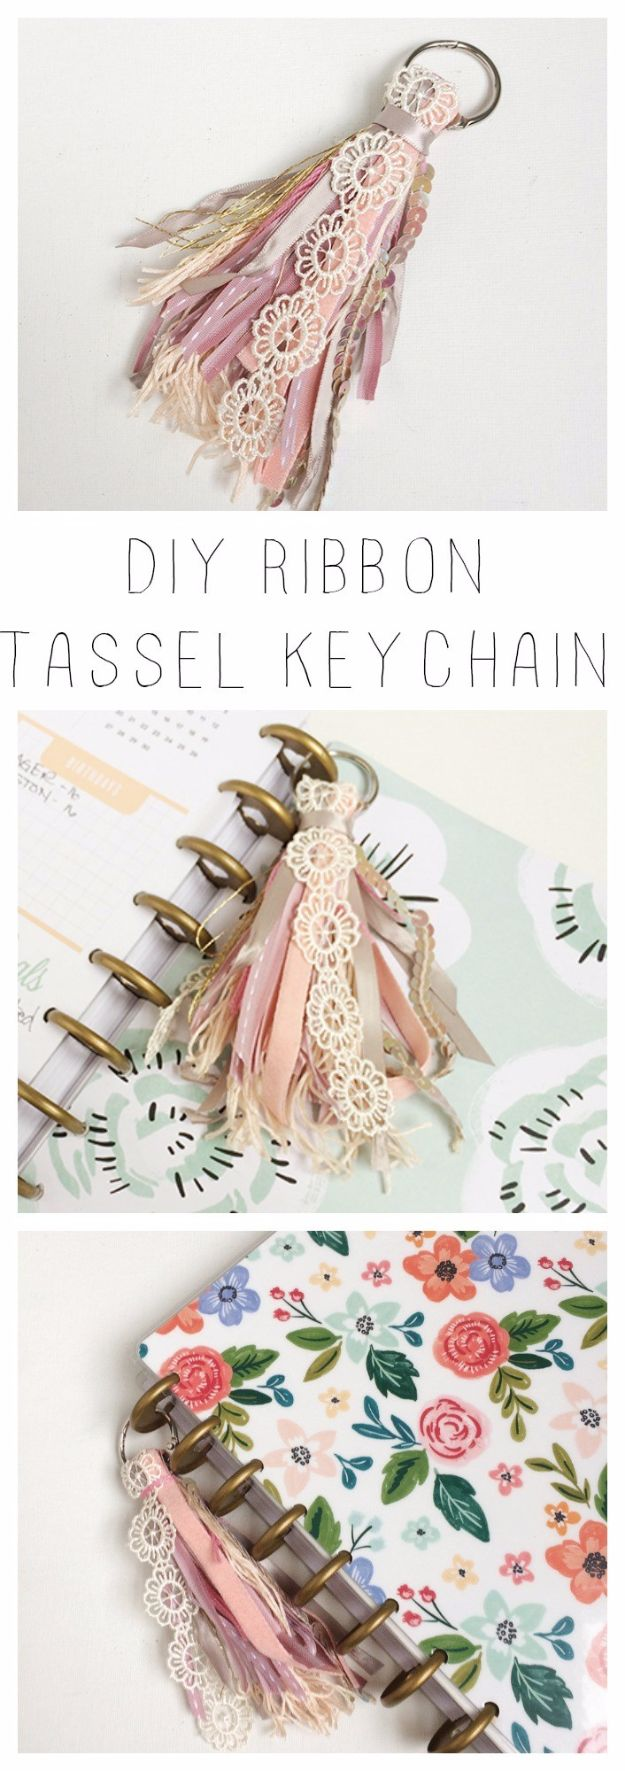 Crafts for Teens to Make and Sell - DIY Ribbon Tassel Key Chain - Cheap and Easy DIY Ideas To Make For Extra Money - Best Things to Sell On Etsy, Dollar Store Craft Ideas, Quick Projects for Teenagers To Make Spending Cash - DIY Gifts, Wall Art, School Supplies, Room Decor, Jewelry, Fashion, Hair Accessories, Bracelets, Magnets http://diyprojectsforteens.com/crafts-to-sell-teens